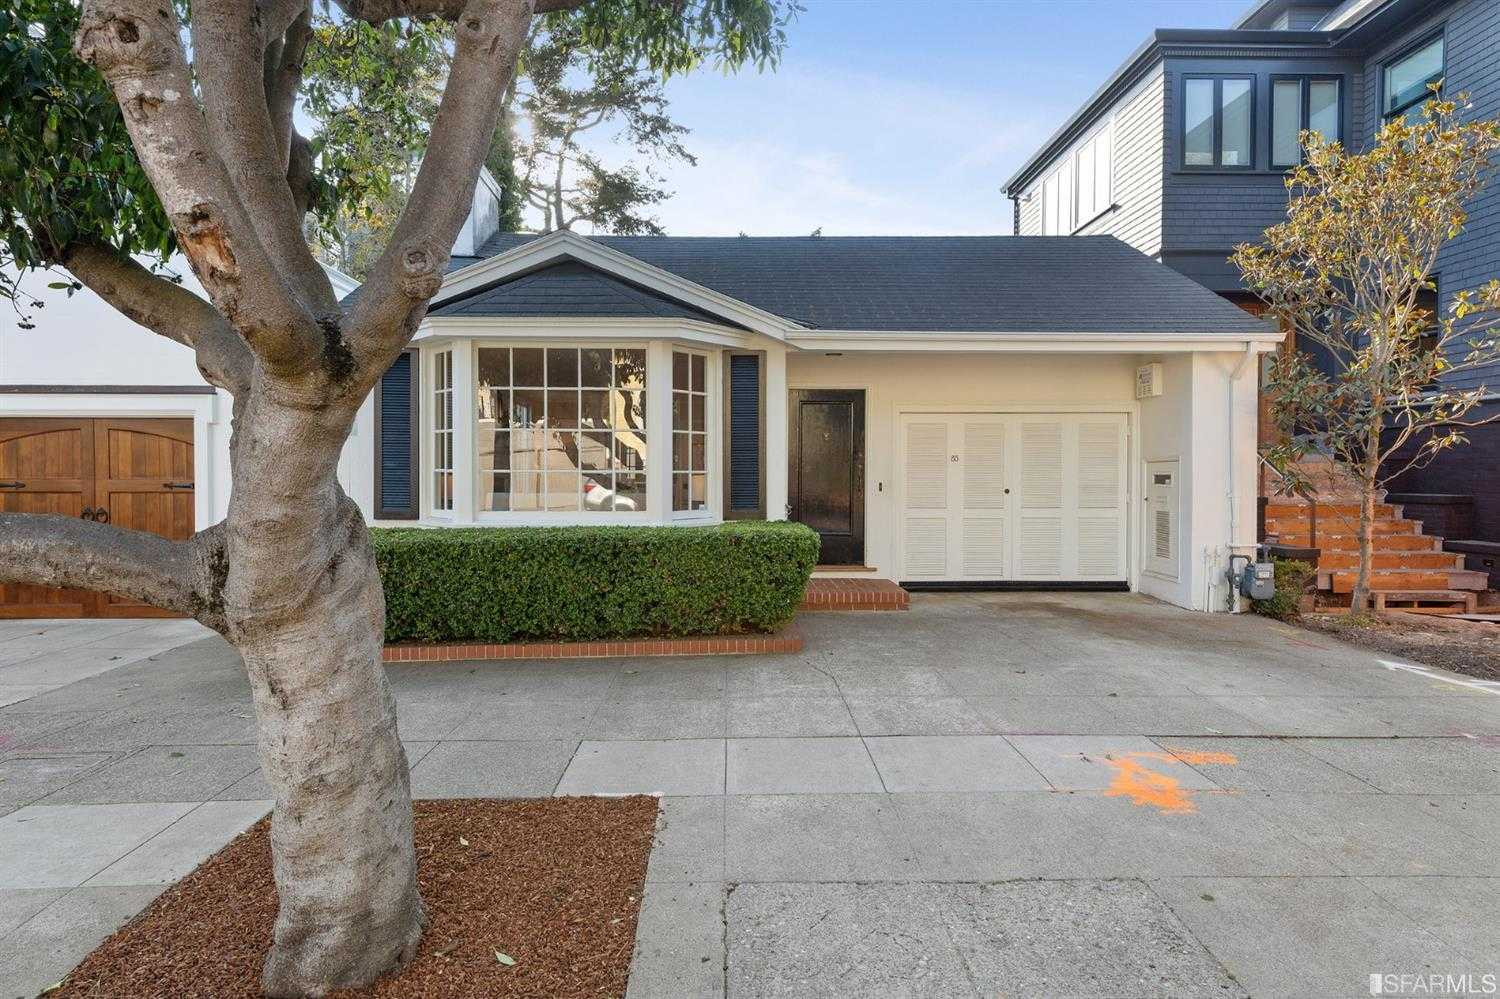 $1,998,000 - 3Br/2Ba -  for Sale in San Francisco